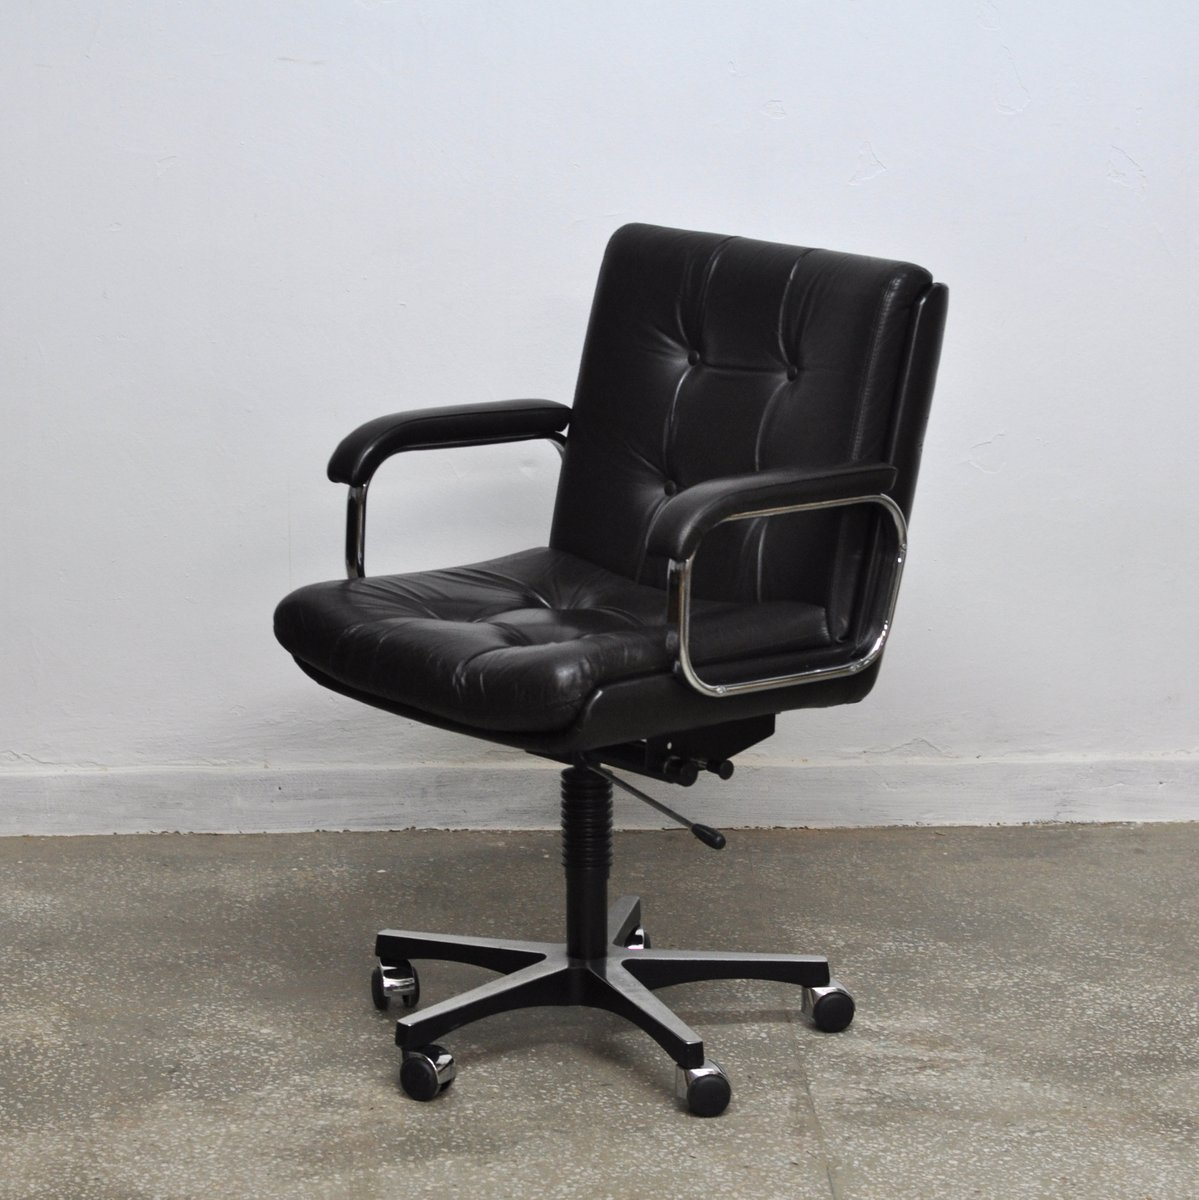 ergonomic chair norway ghost chairs vintage norwegian office from ring mekanikk for sale